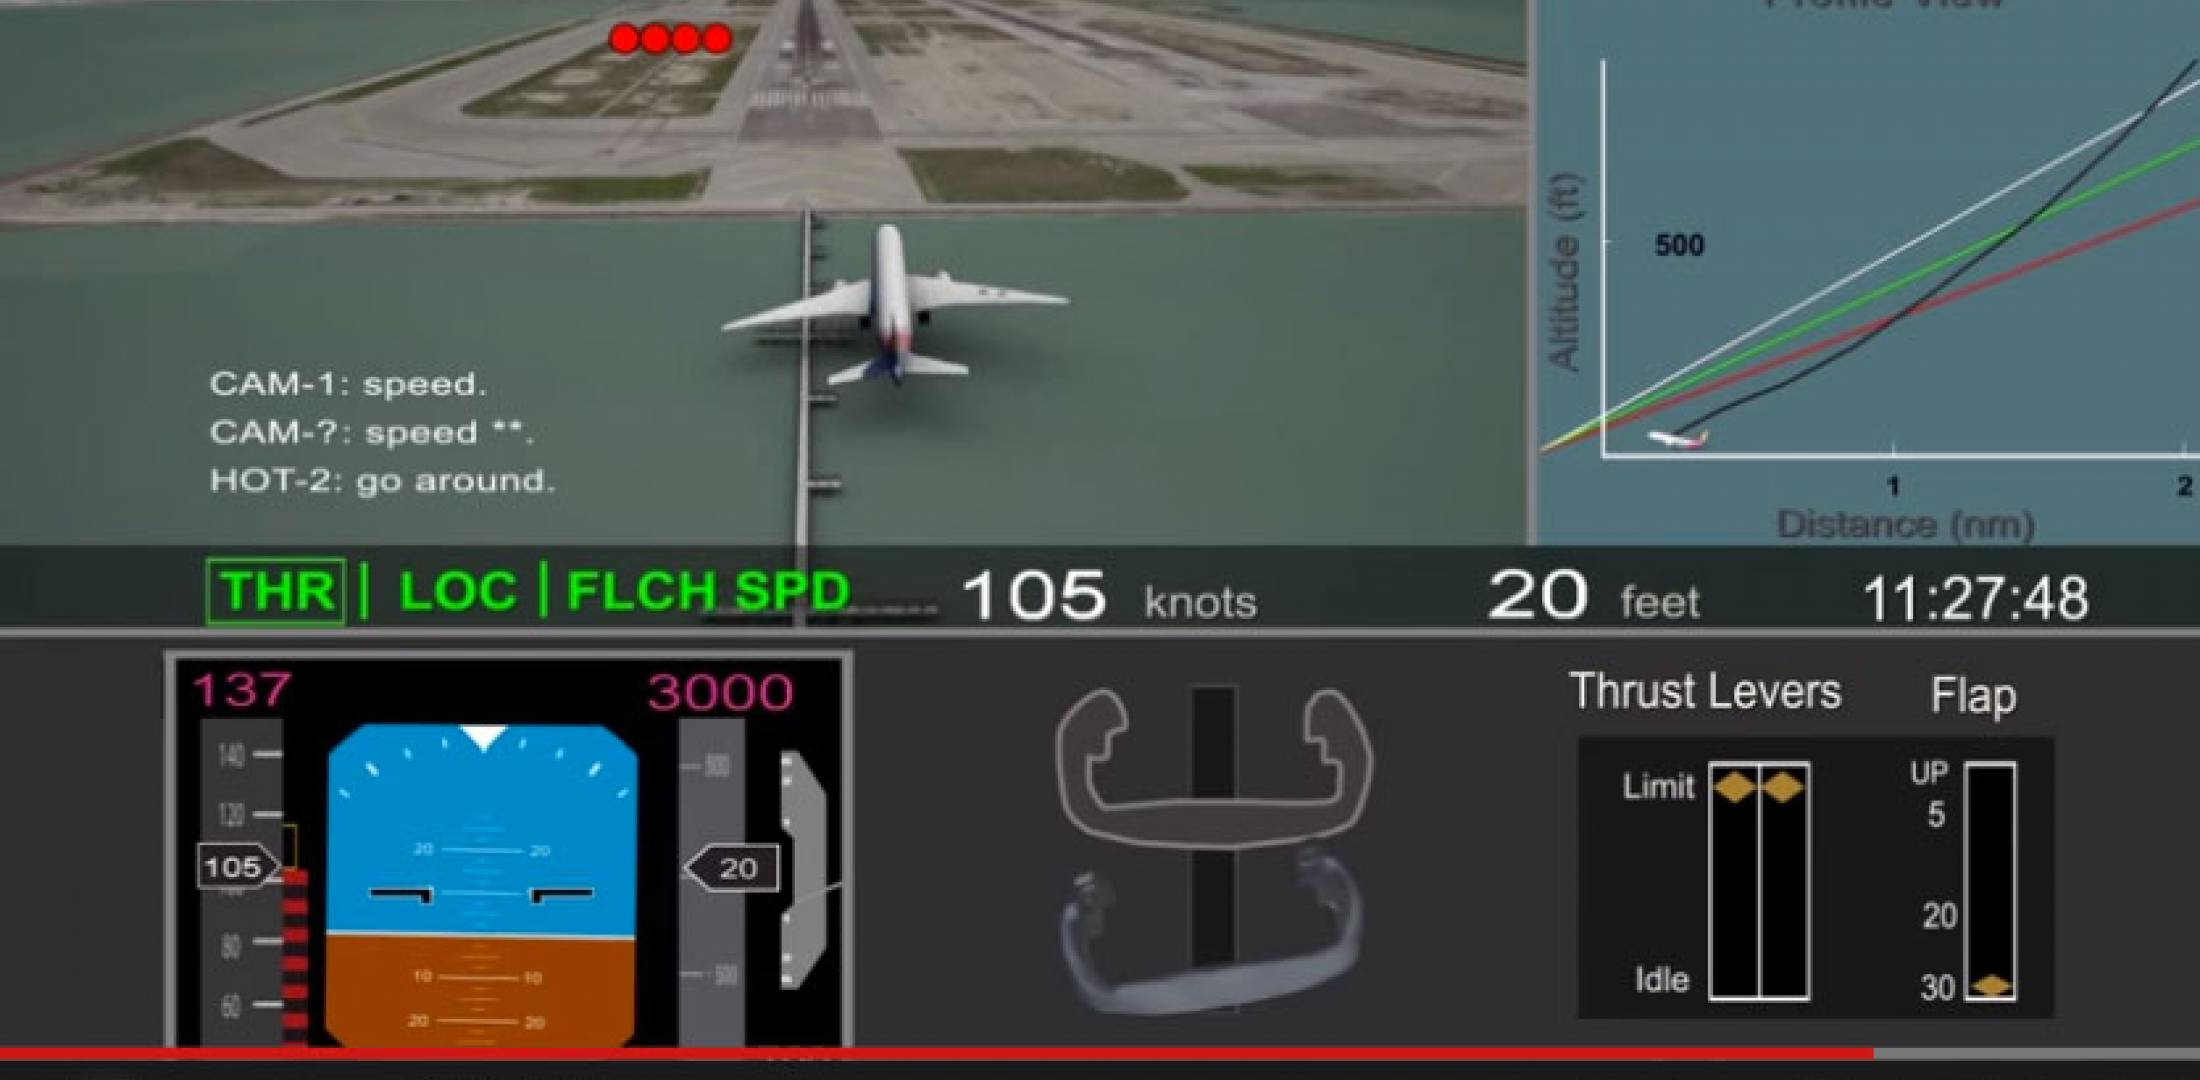 The crew of Asiana Flight 214 mismanaged the final approach of the Boeing  777 as it landed at San Francisco International Airport. [Graphic: NTSB]